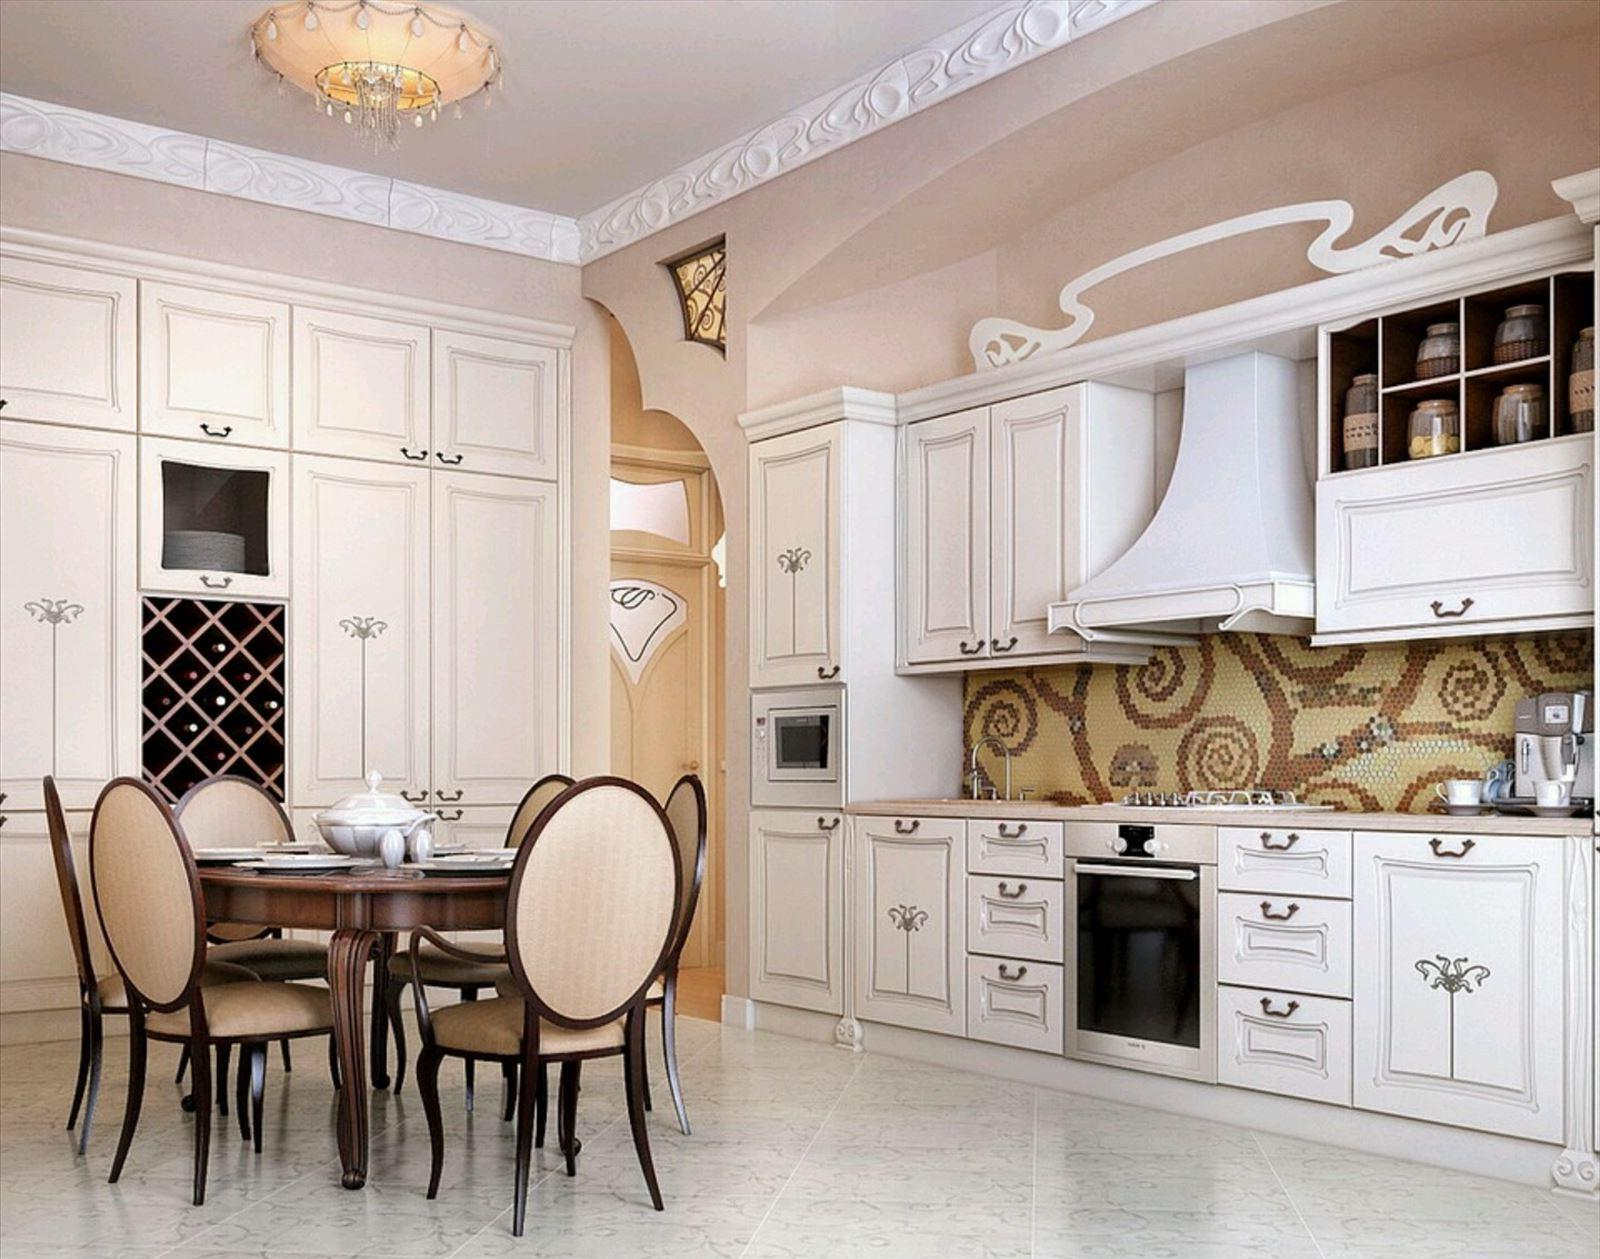 Great kitchen with ethnic and traditional touch and white furniture set